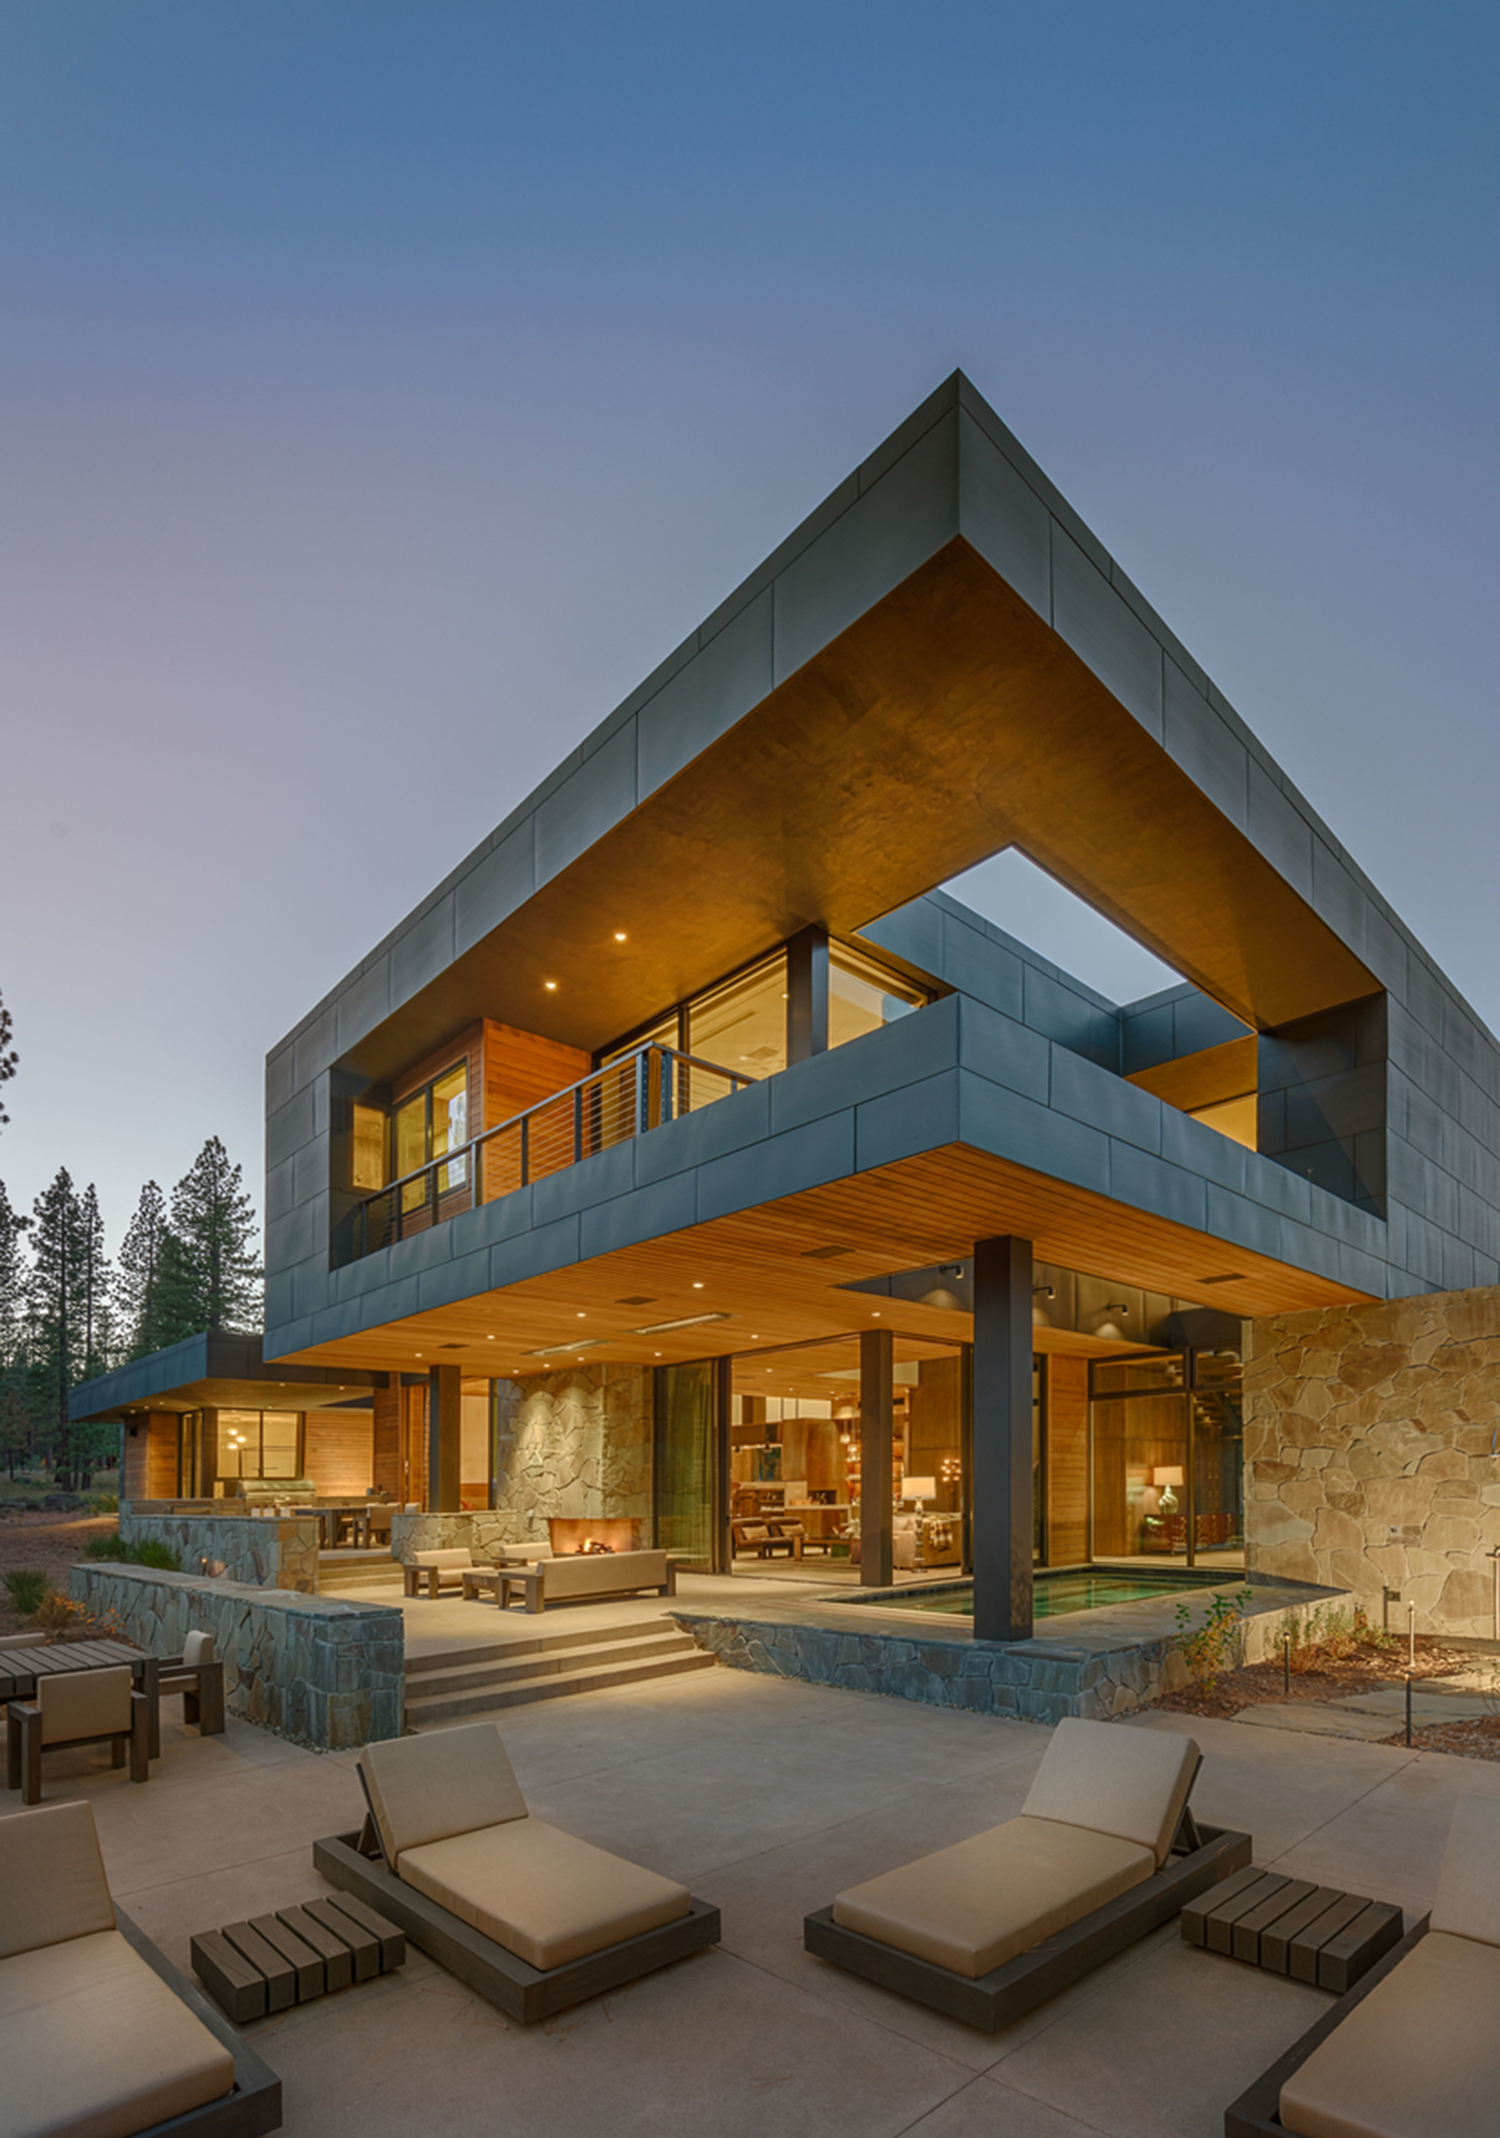 Lot 403_Exterior_Rear View_Patio_Architectural Angle.jpg